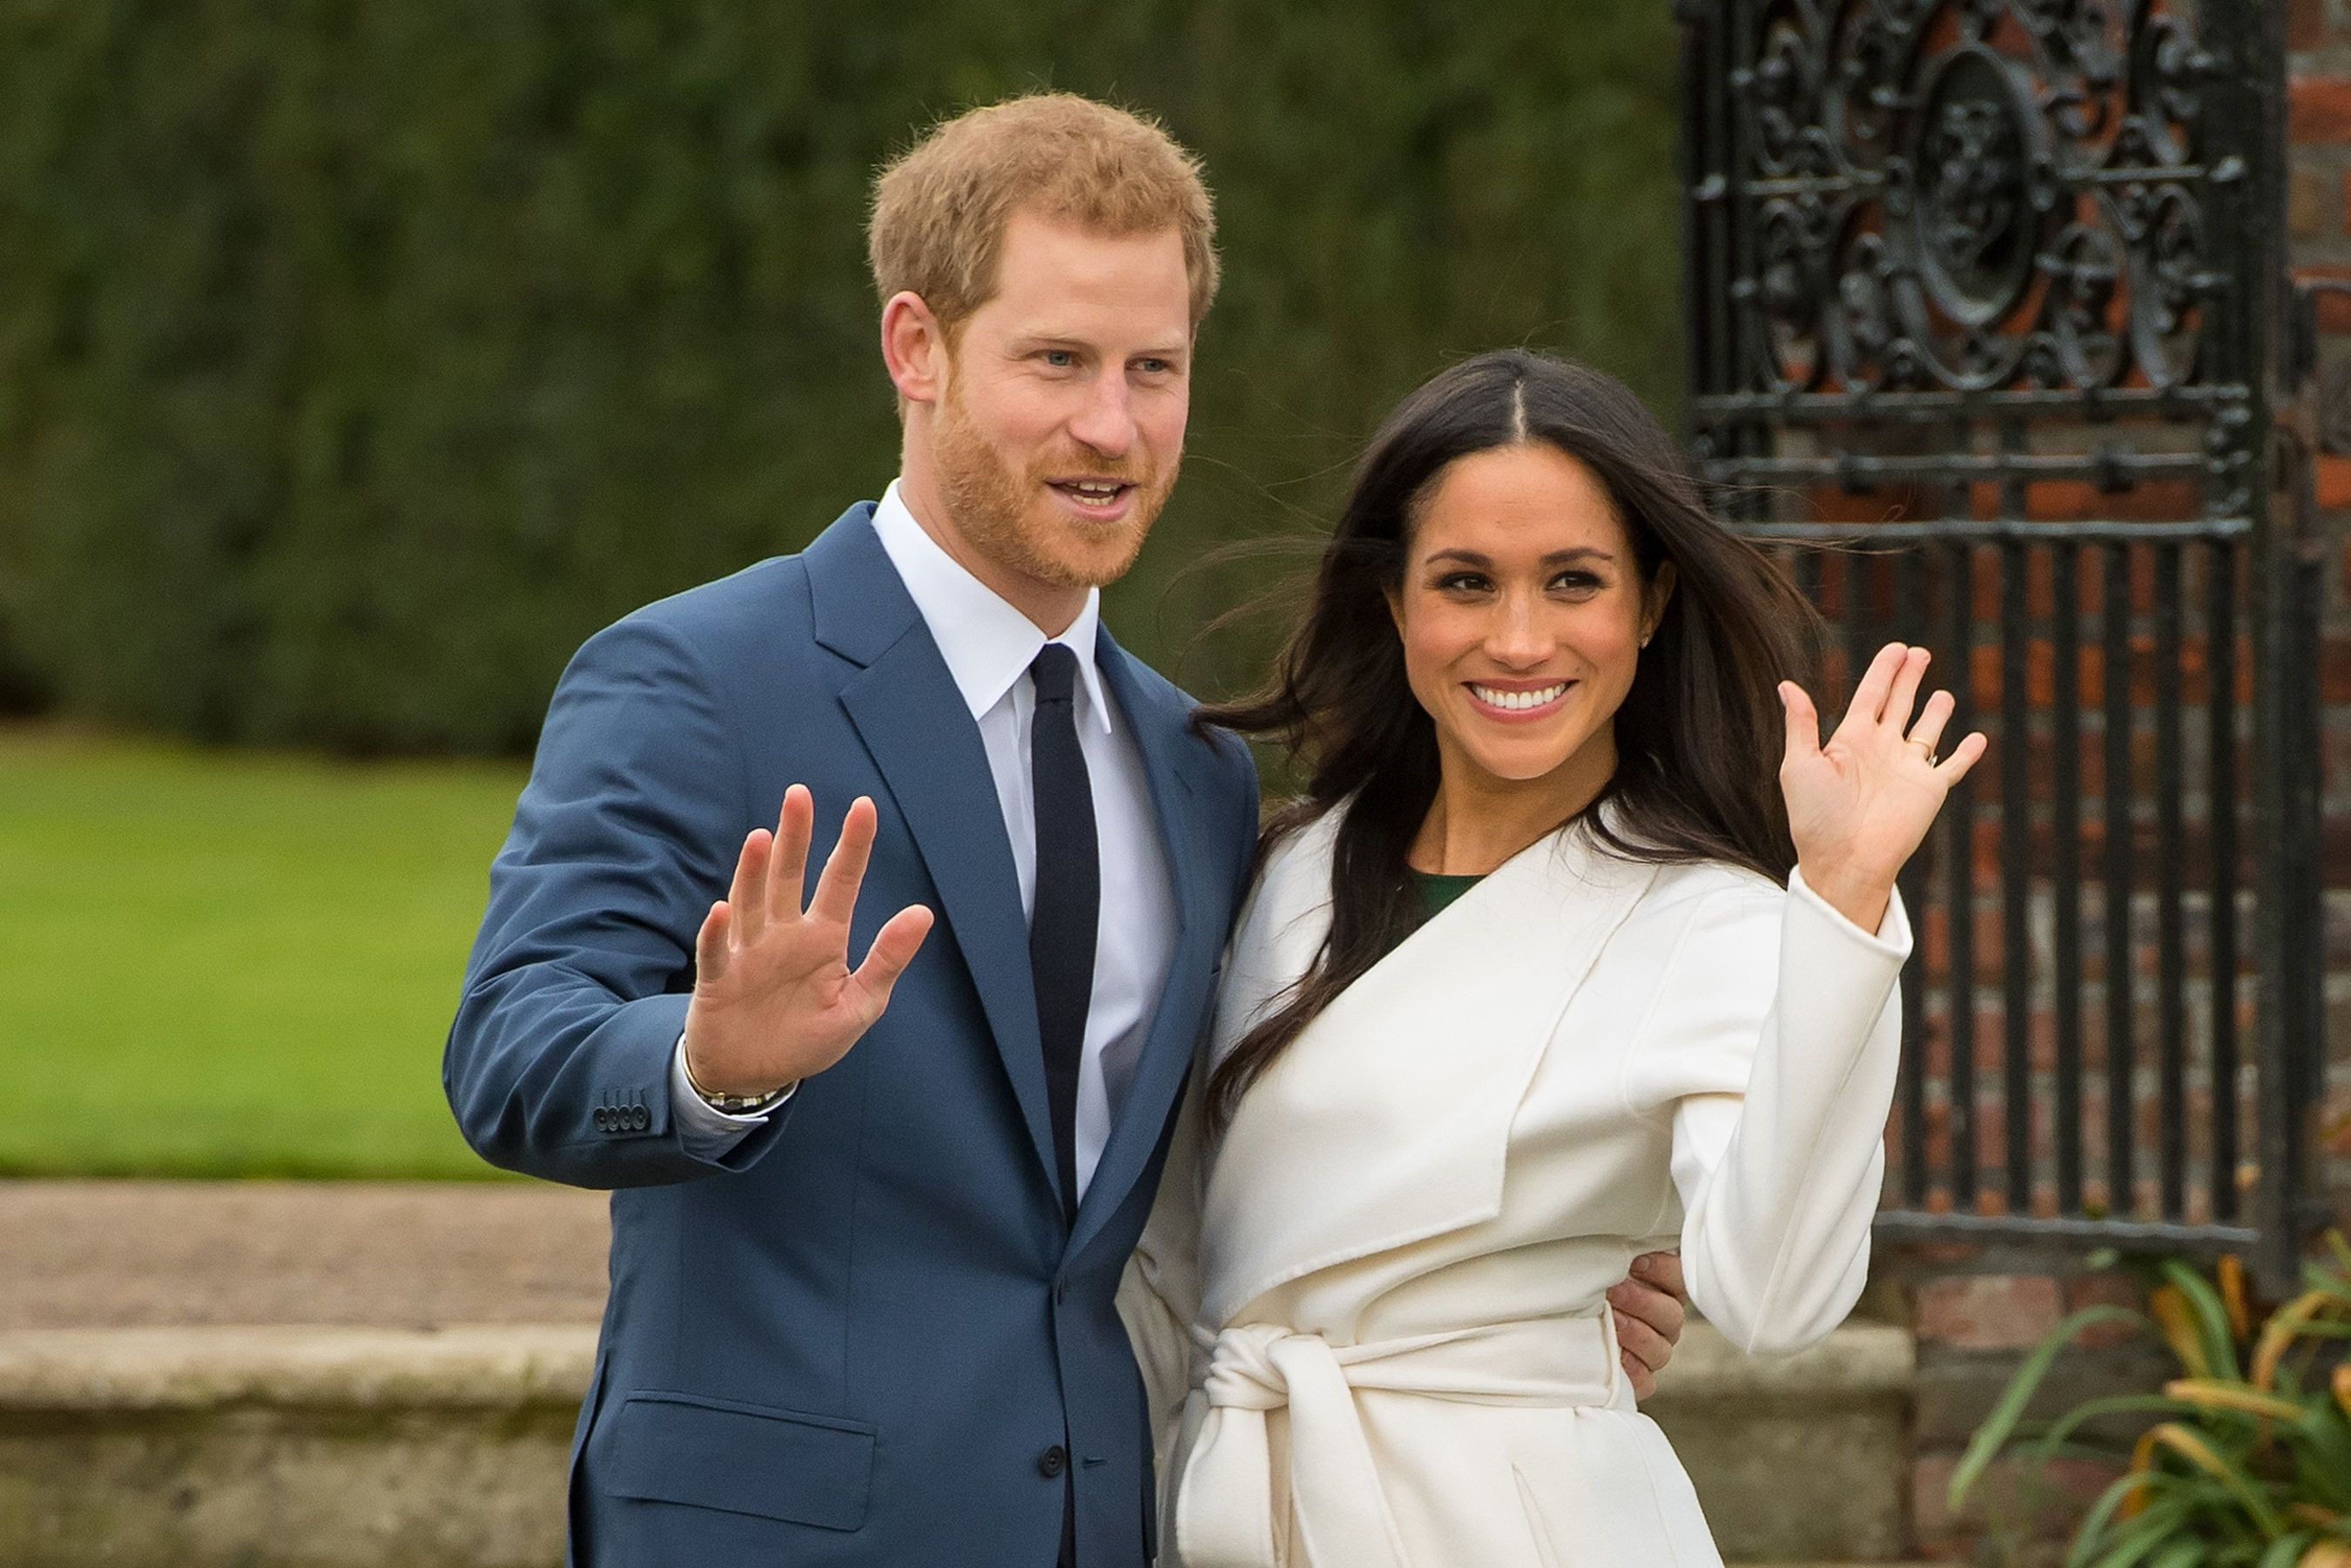 Harry And Meghan To Invite 2,640 Members Of The Public To Royal